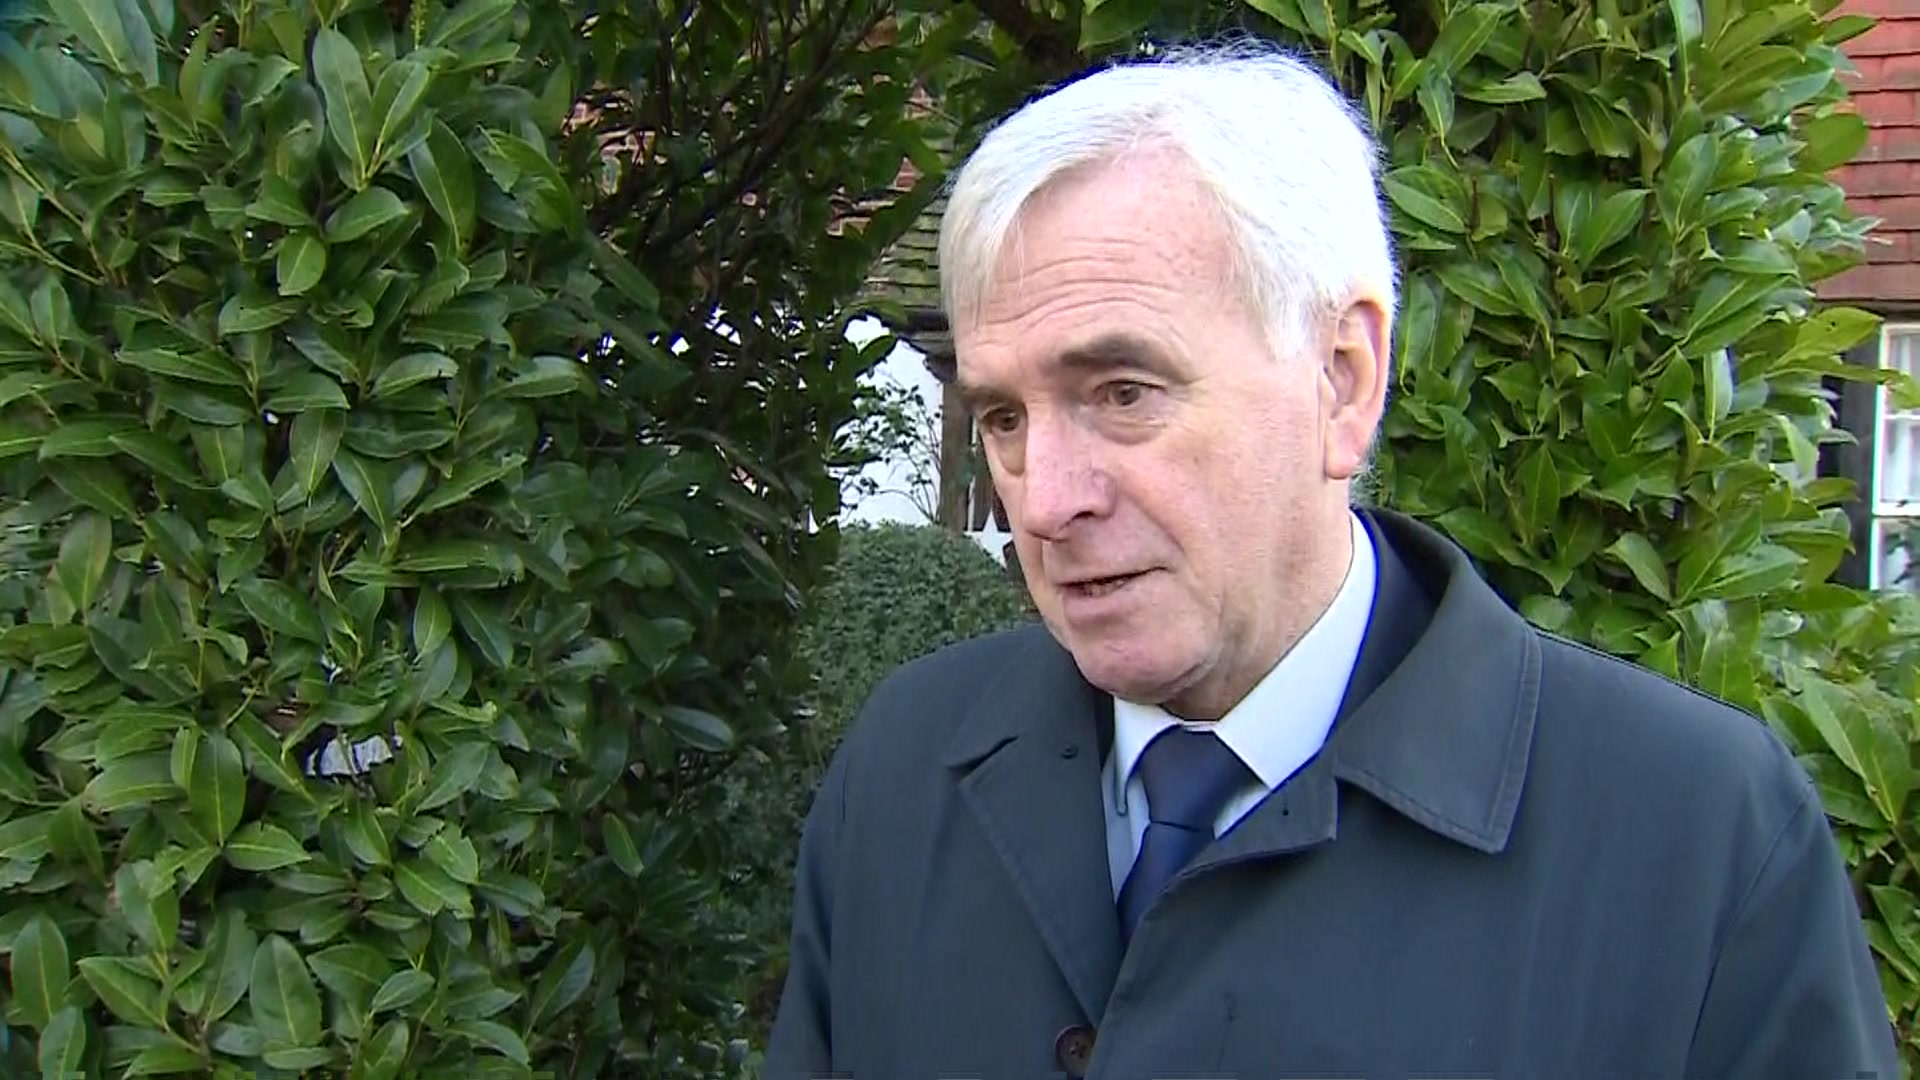 Labour resignations: John McDonnell promises 'listening exercise'